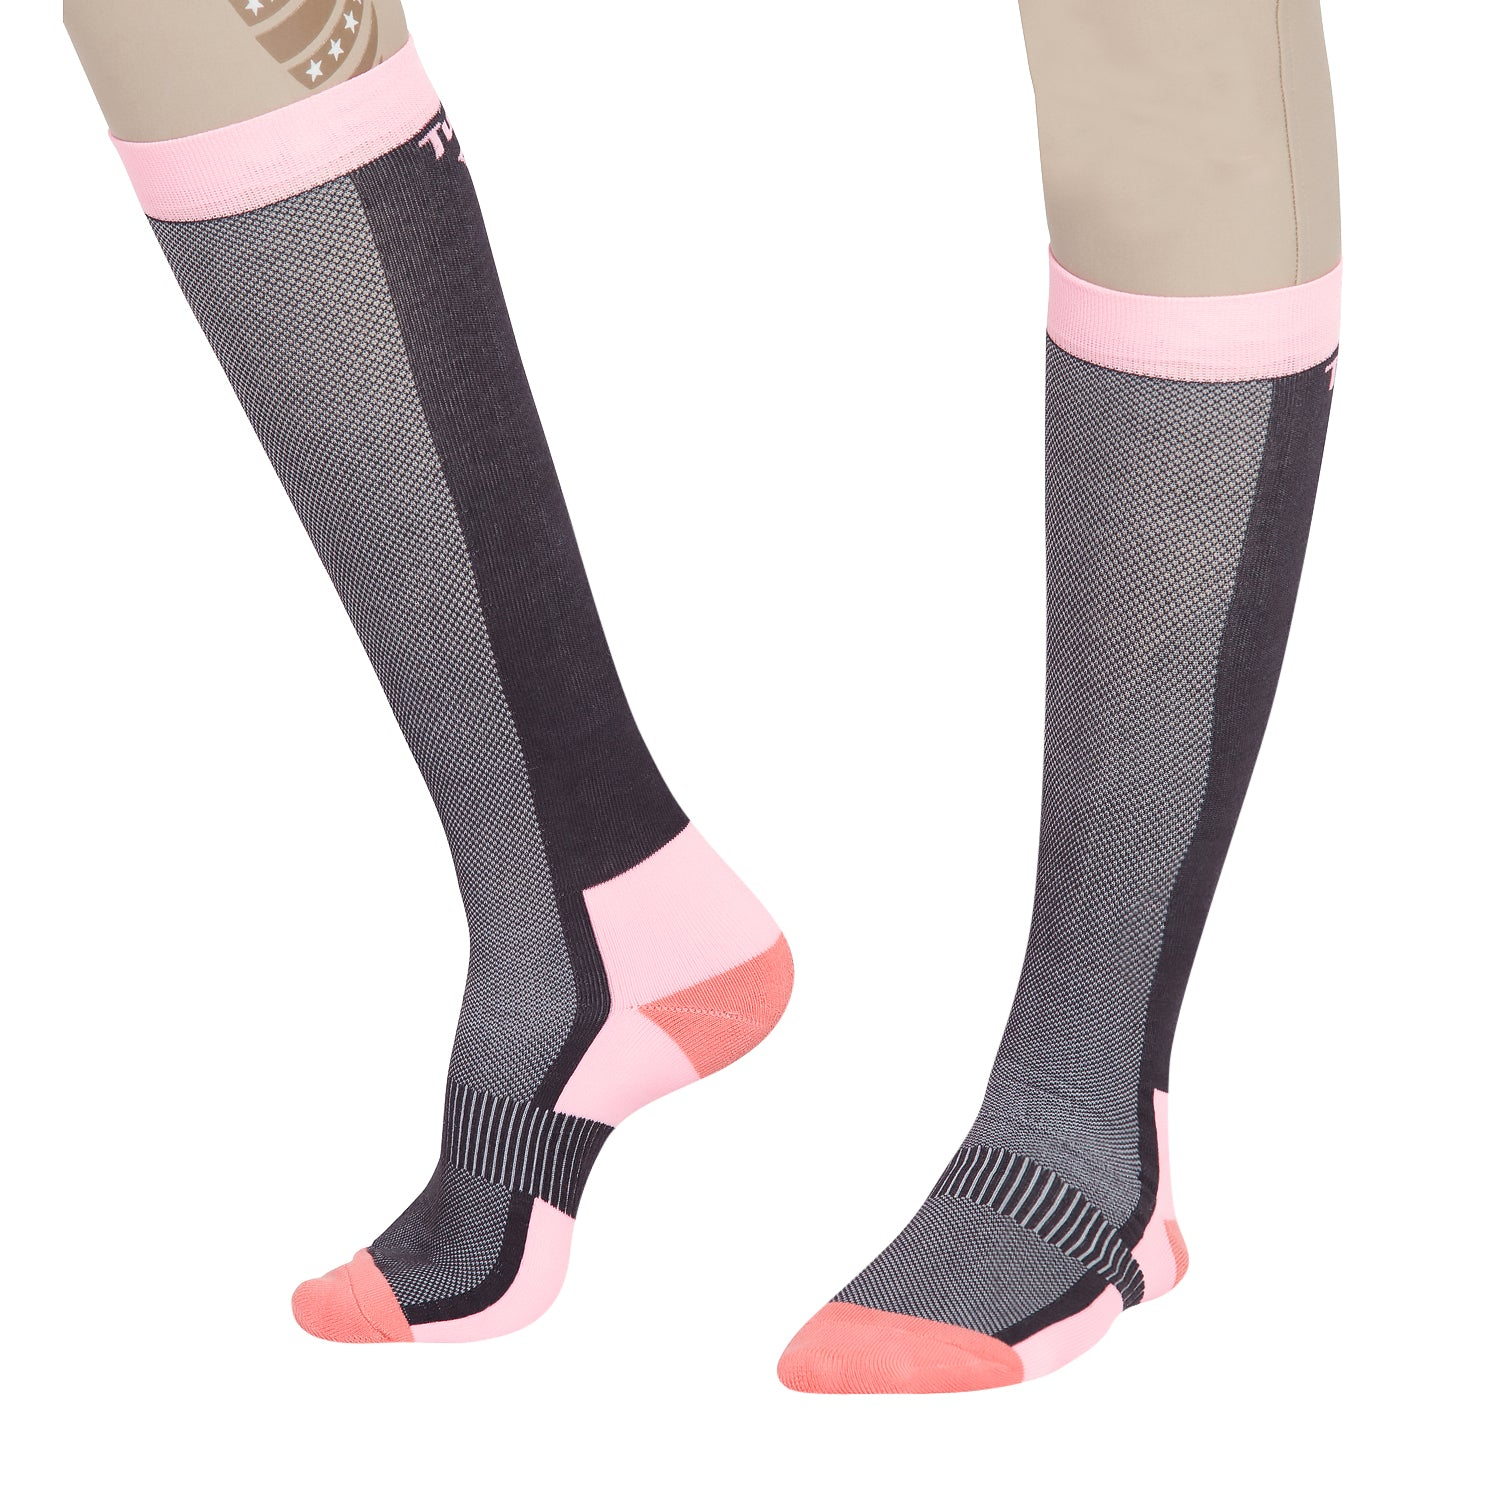 Ladies Ventilated Knee Hi Socks - TuffRider - Breeches.com